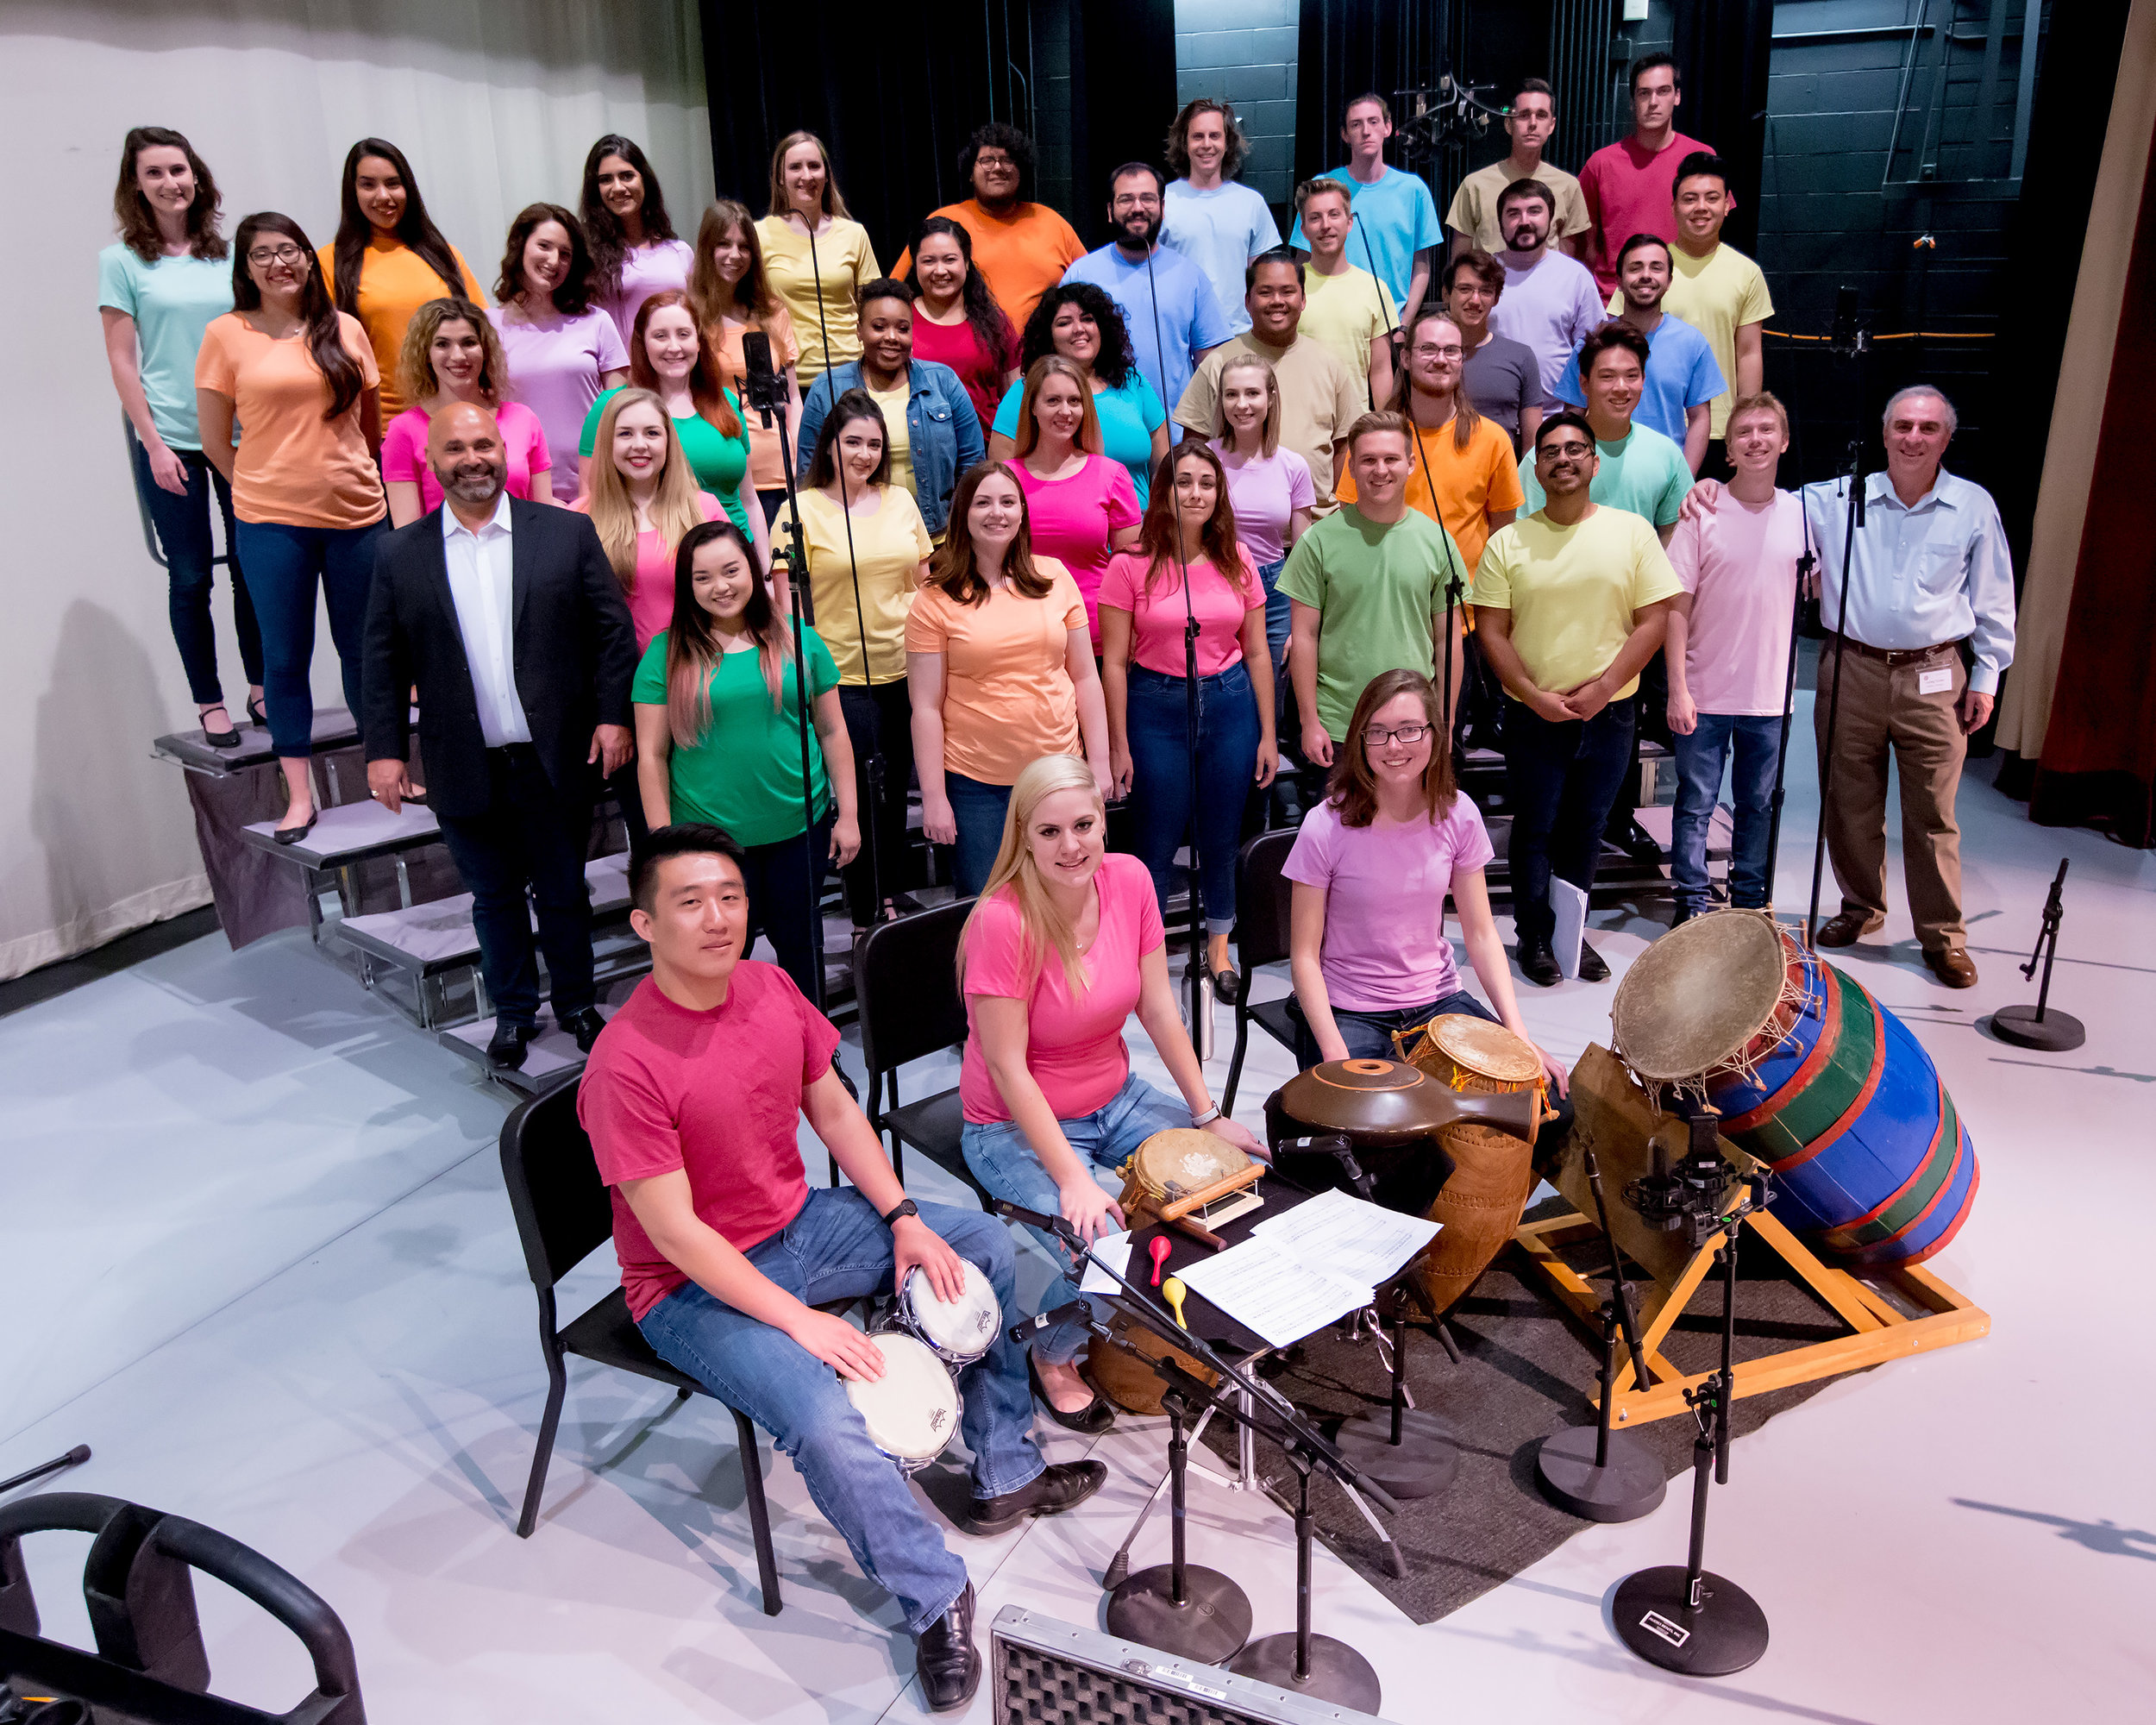 The Choir, with conductor Jonathan Talberg, standing on left, on the day of the Choral Tales filming. (photo: David Tuman)